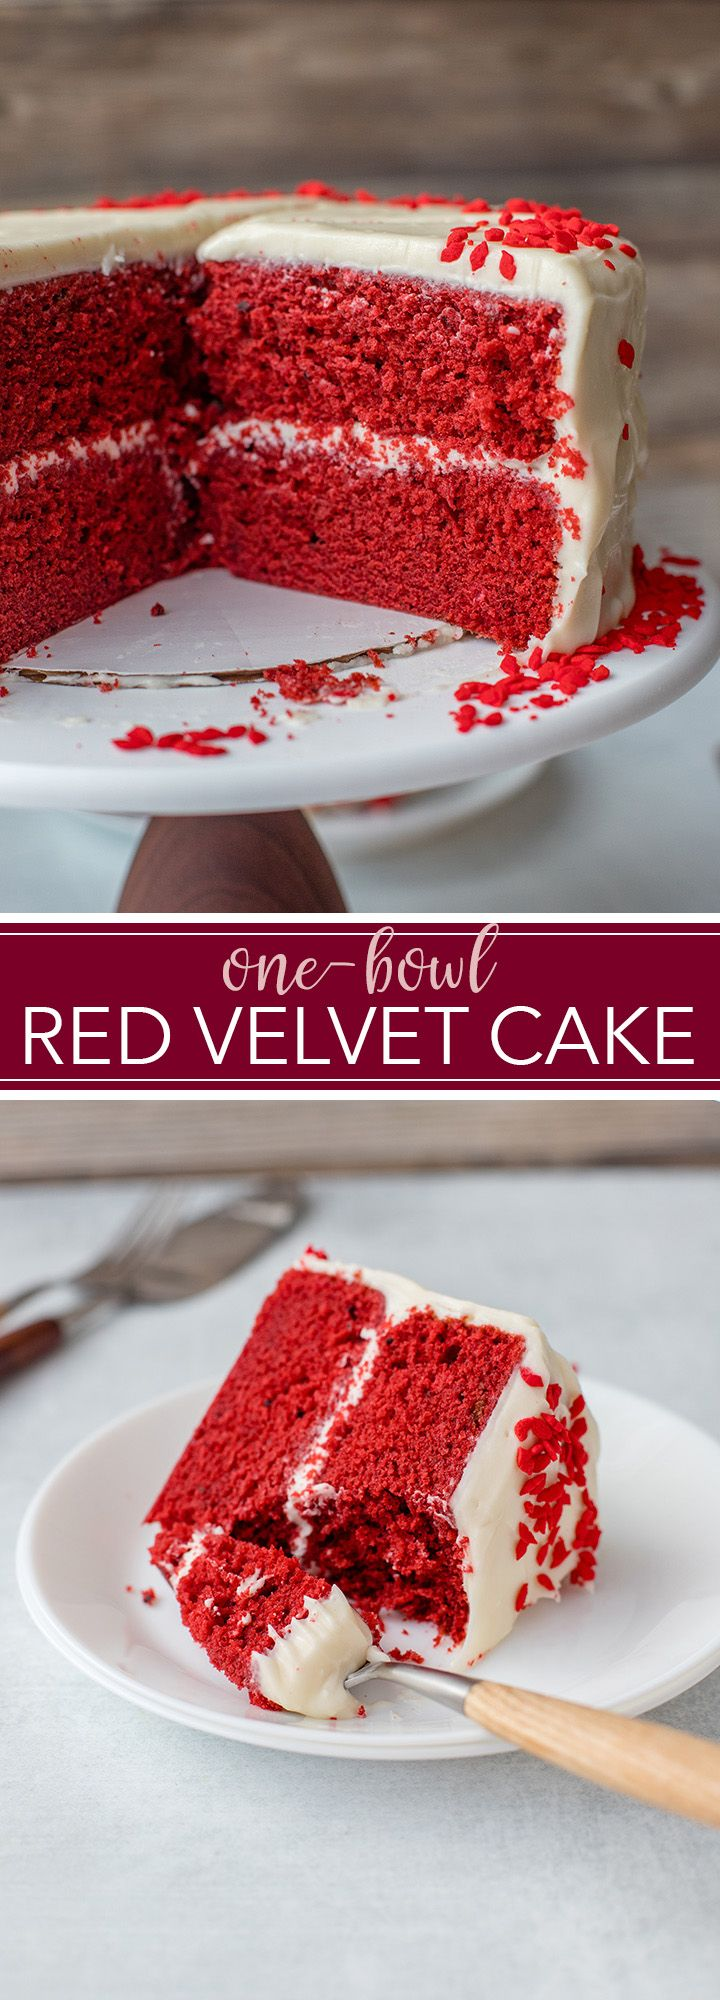 Making a delicious cake from scratch is easy with this one-bowl red velvet layer cake. Moist cake, a beautiful vibrant color, and the best sweet cream cheese frosting. #redvelvet #onebowl #layercakes via @nourishandfete